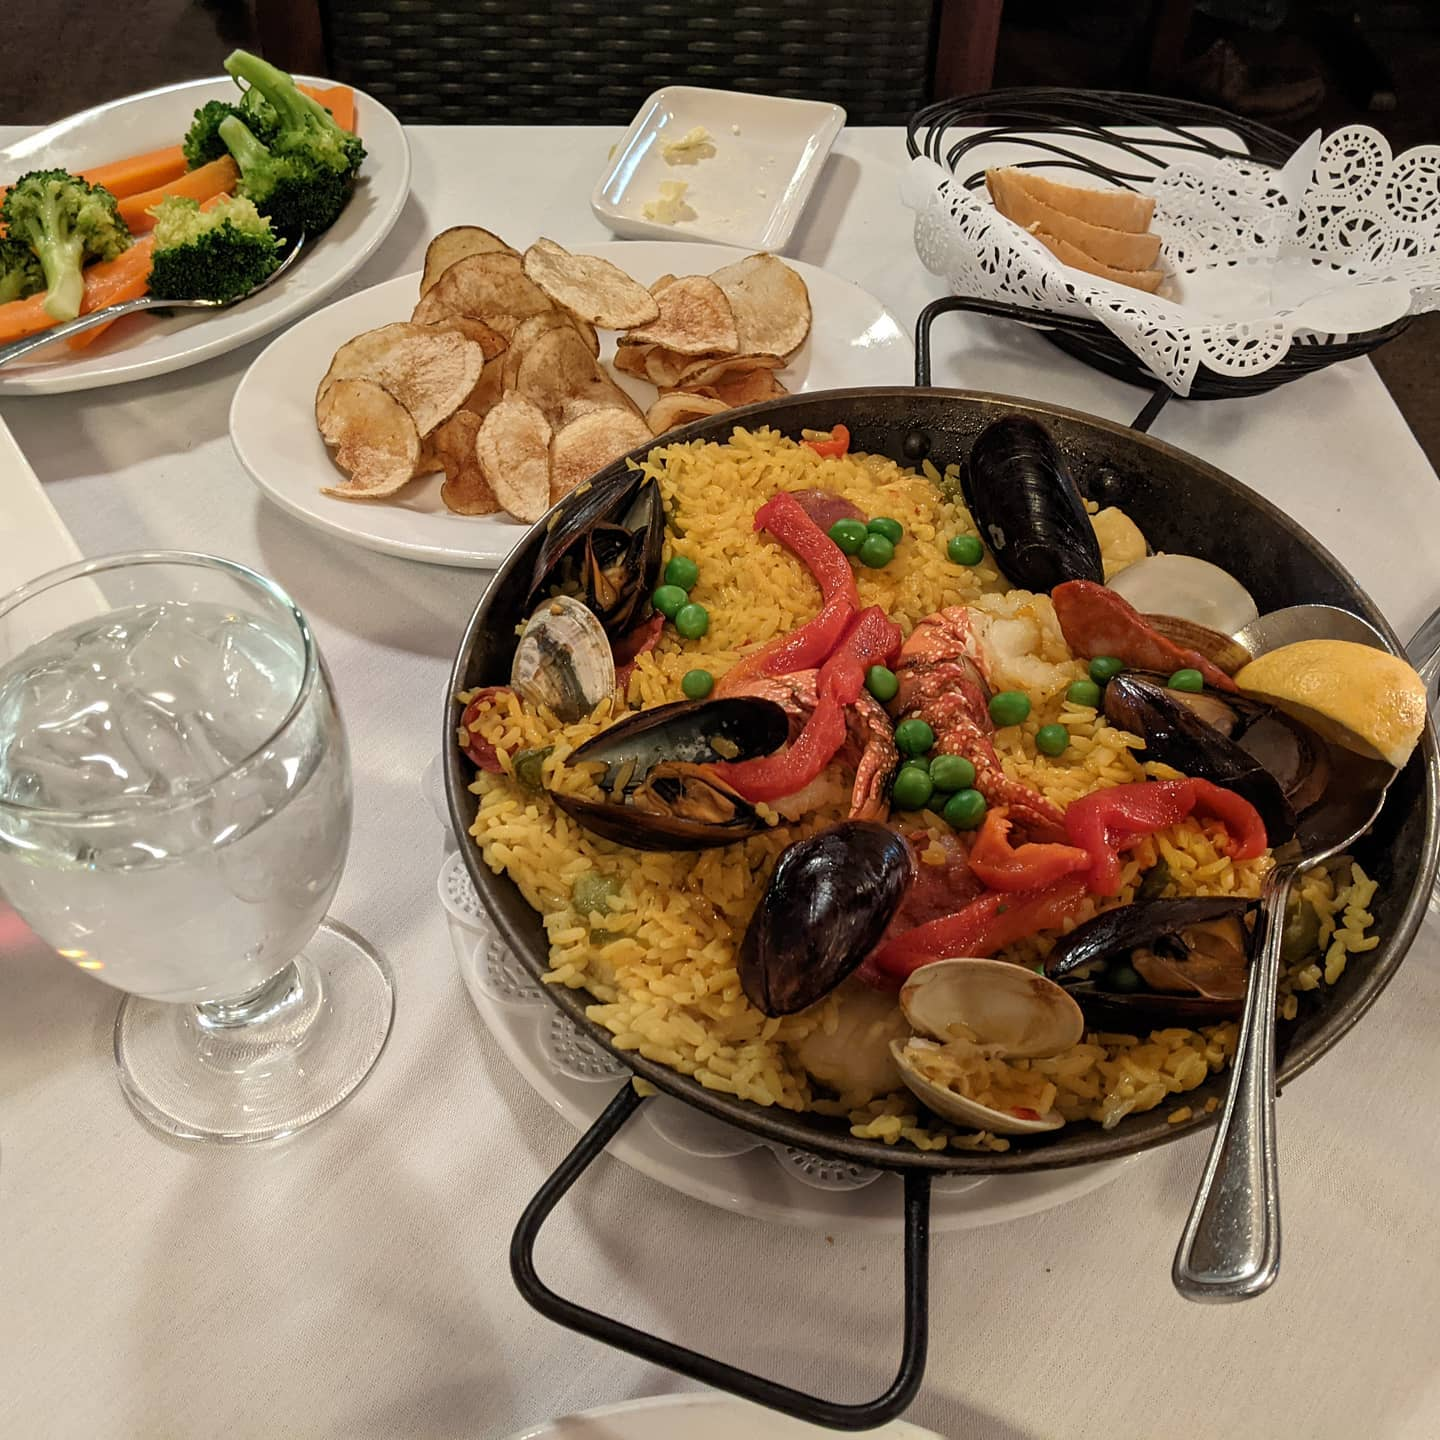 Well, if I leave here hungry I'm doing something wrong. Omg this is amazing paella. #foodporn #mallorcacleveland